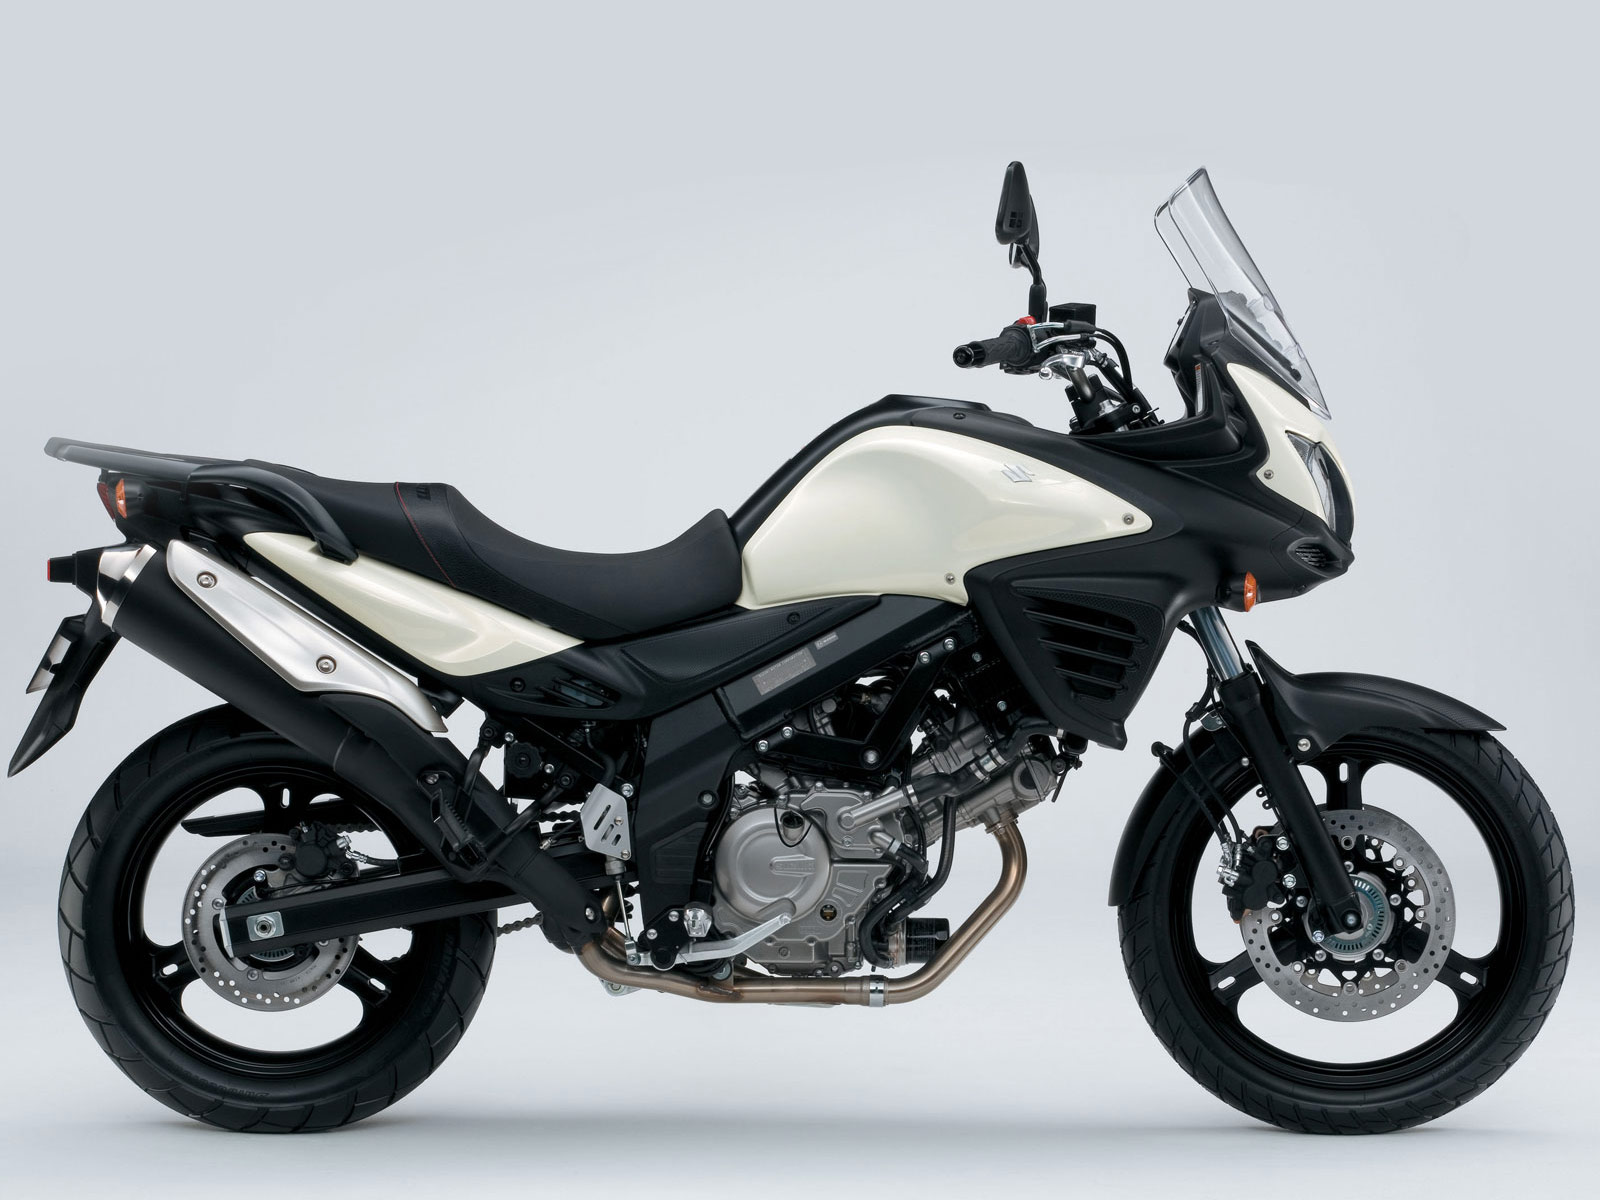 2012 suzuki v strom 650 abs wallpapers review. Black Bedroom Furniture Sets. Home Design Ideas